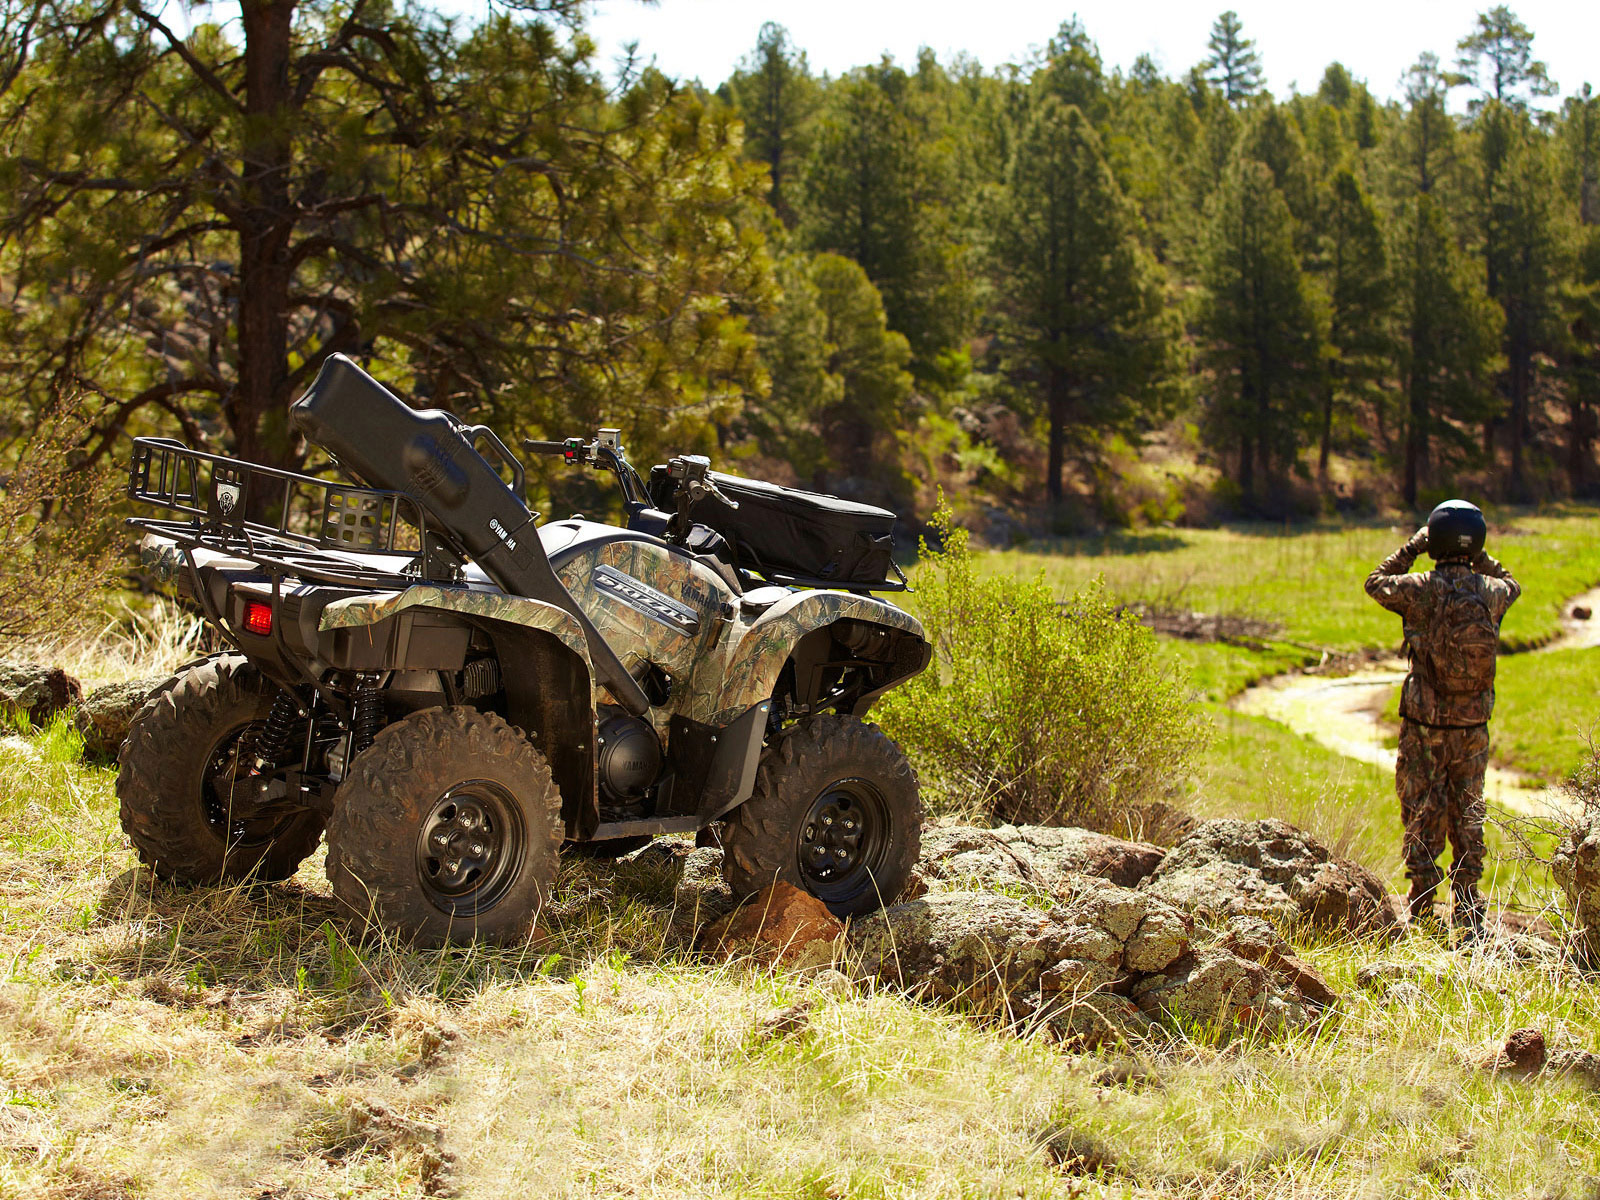 2012 YAMAHA Grizzly 550 FI Auto 4x4 EPS ATV pictures review 1600x1200